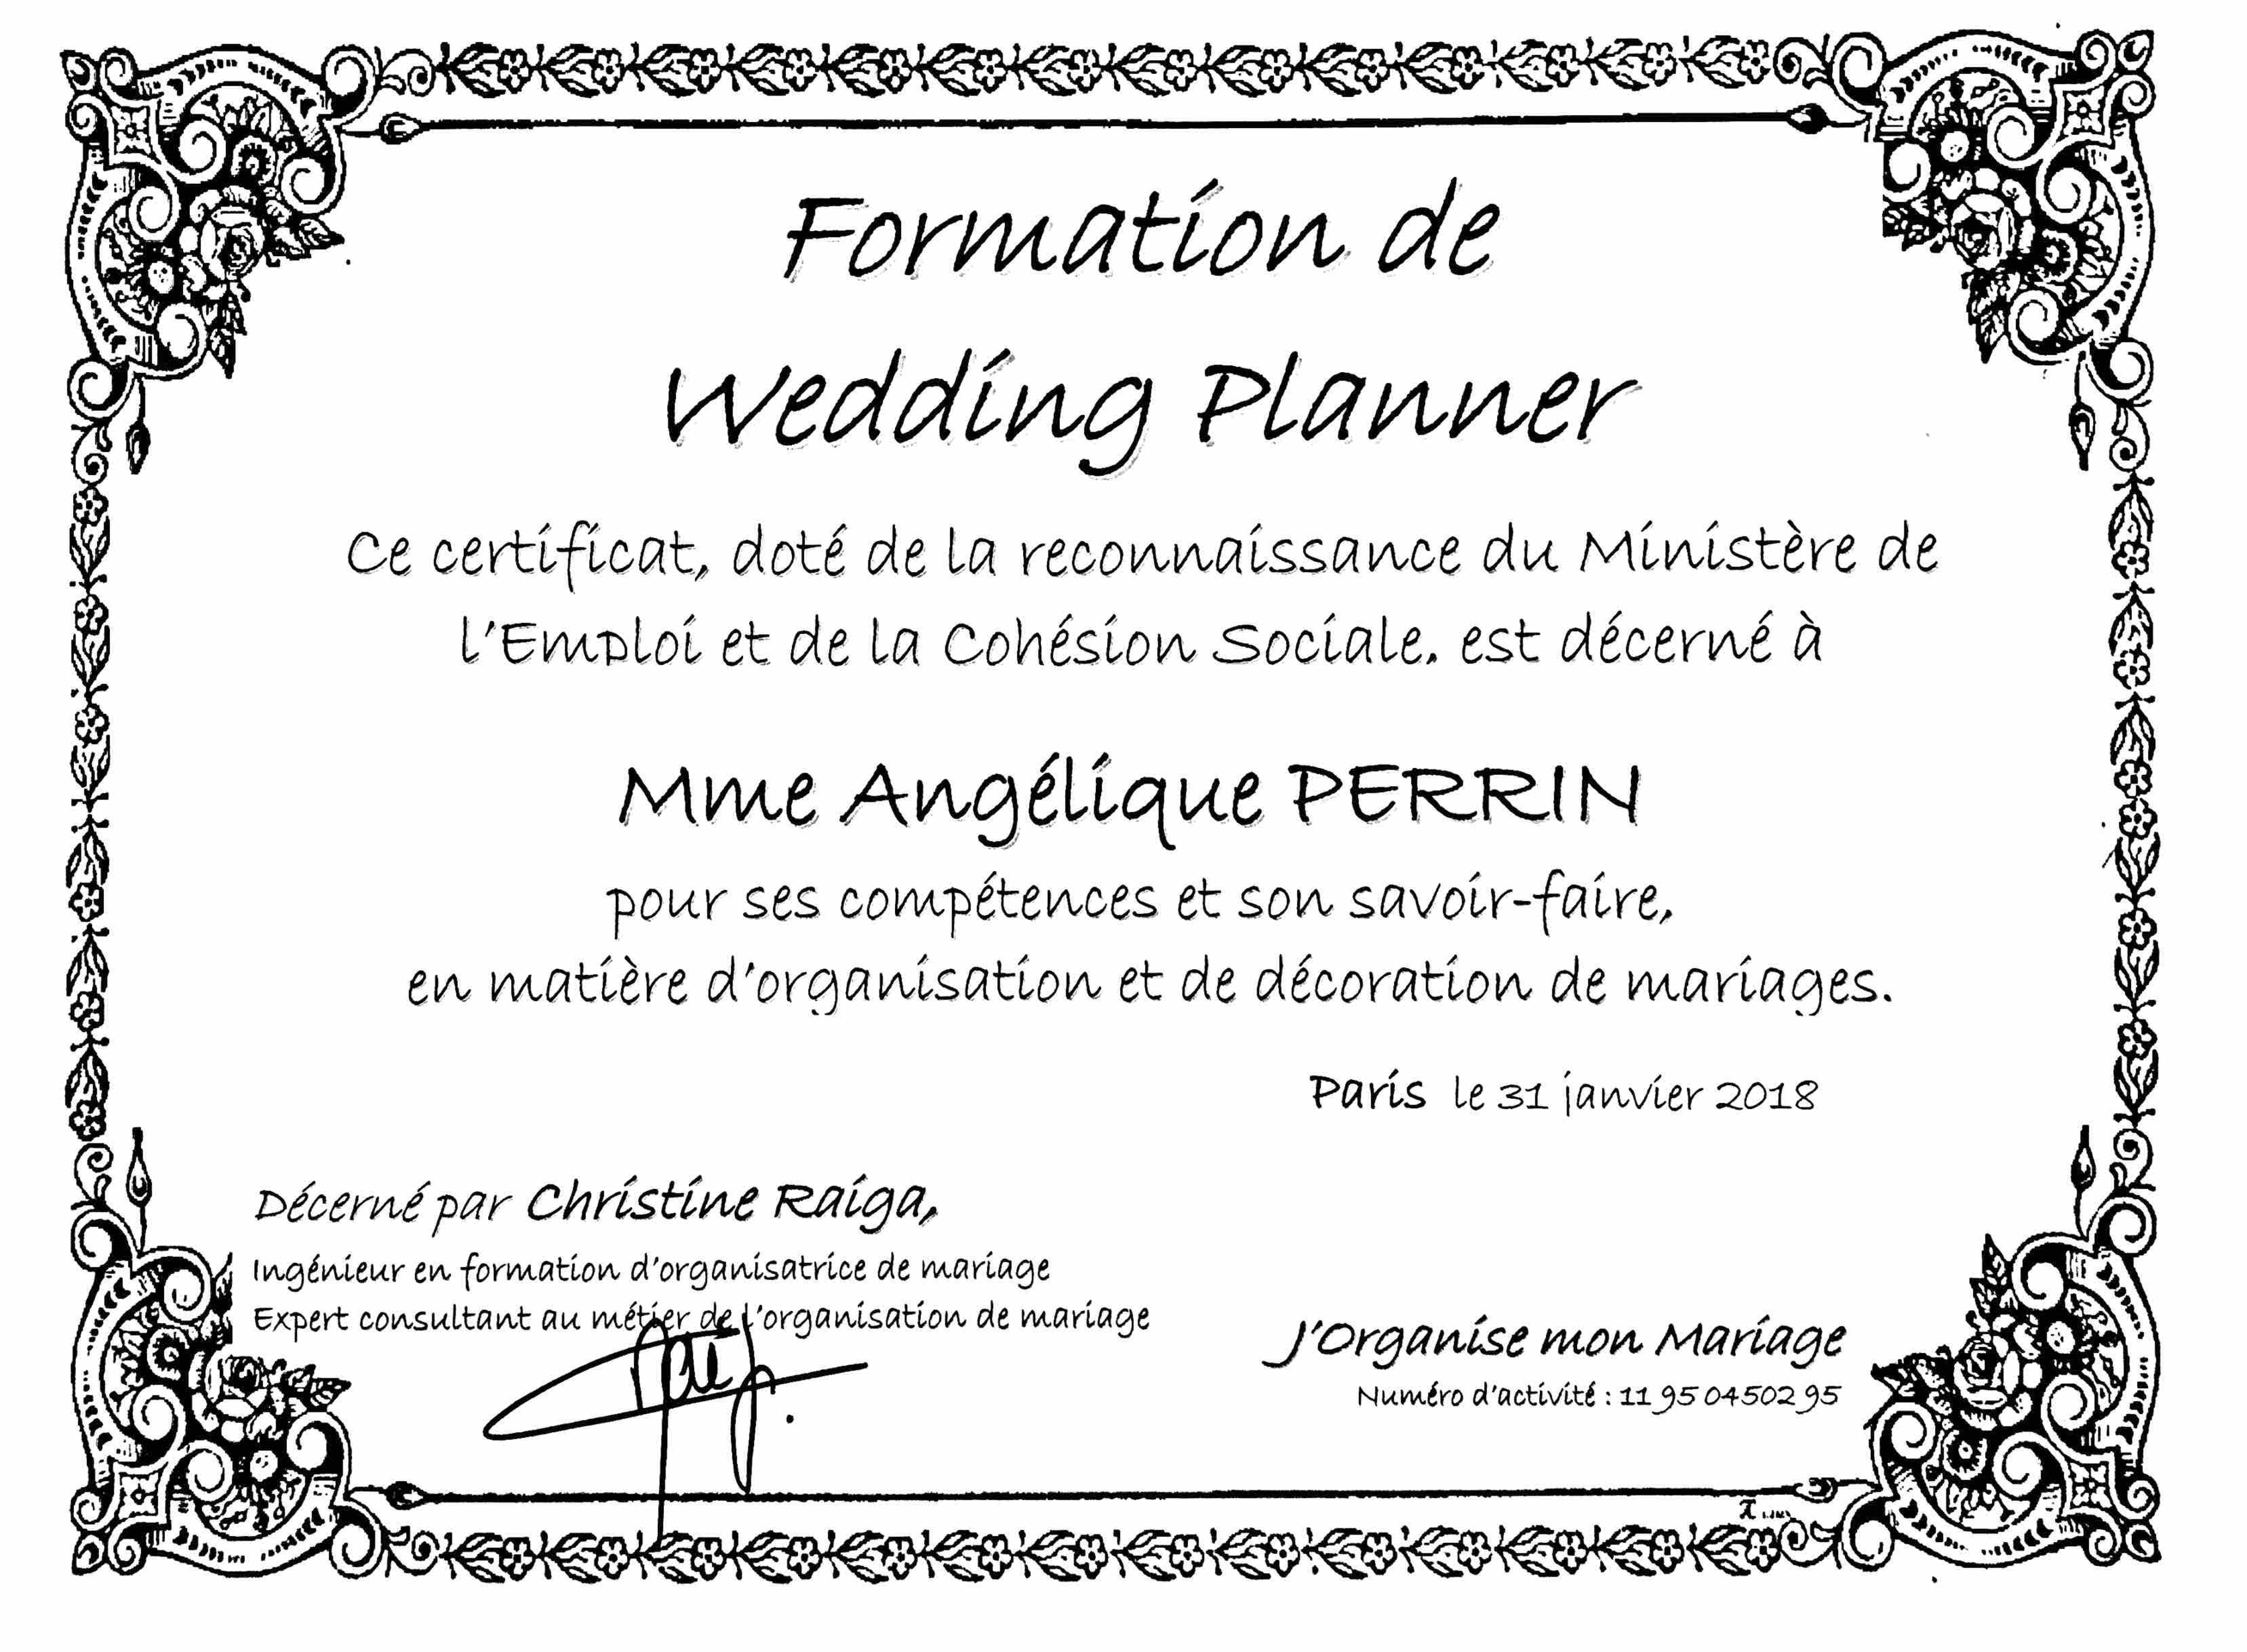 Diplome de formation de wedding planner